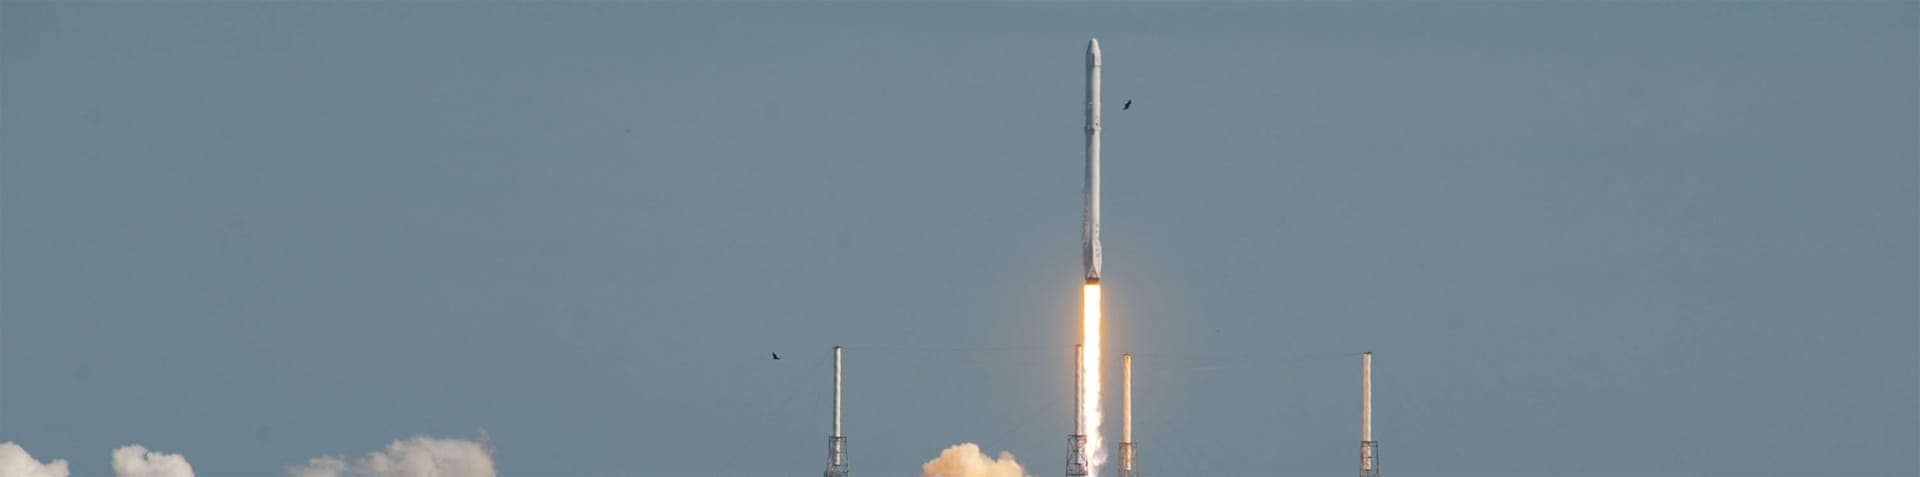 SpaceX rocket explodes during Cape Canaveral test fire ...